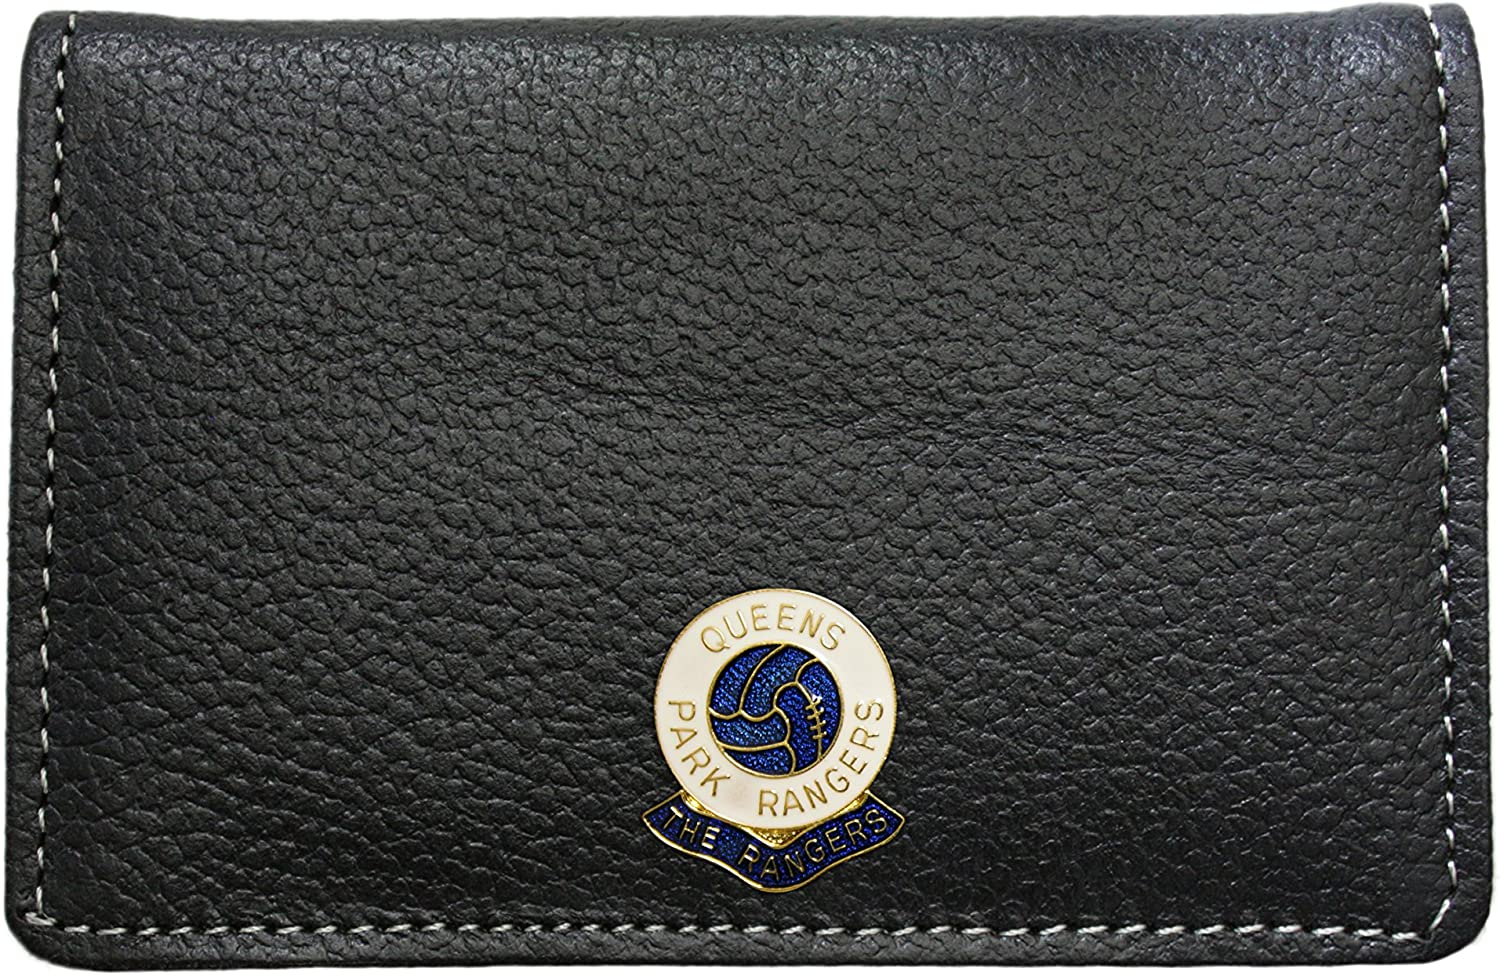 Queens Park Rangers football club leather card holder wallet